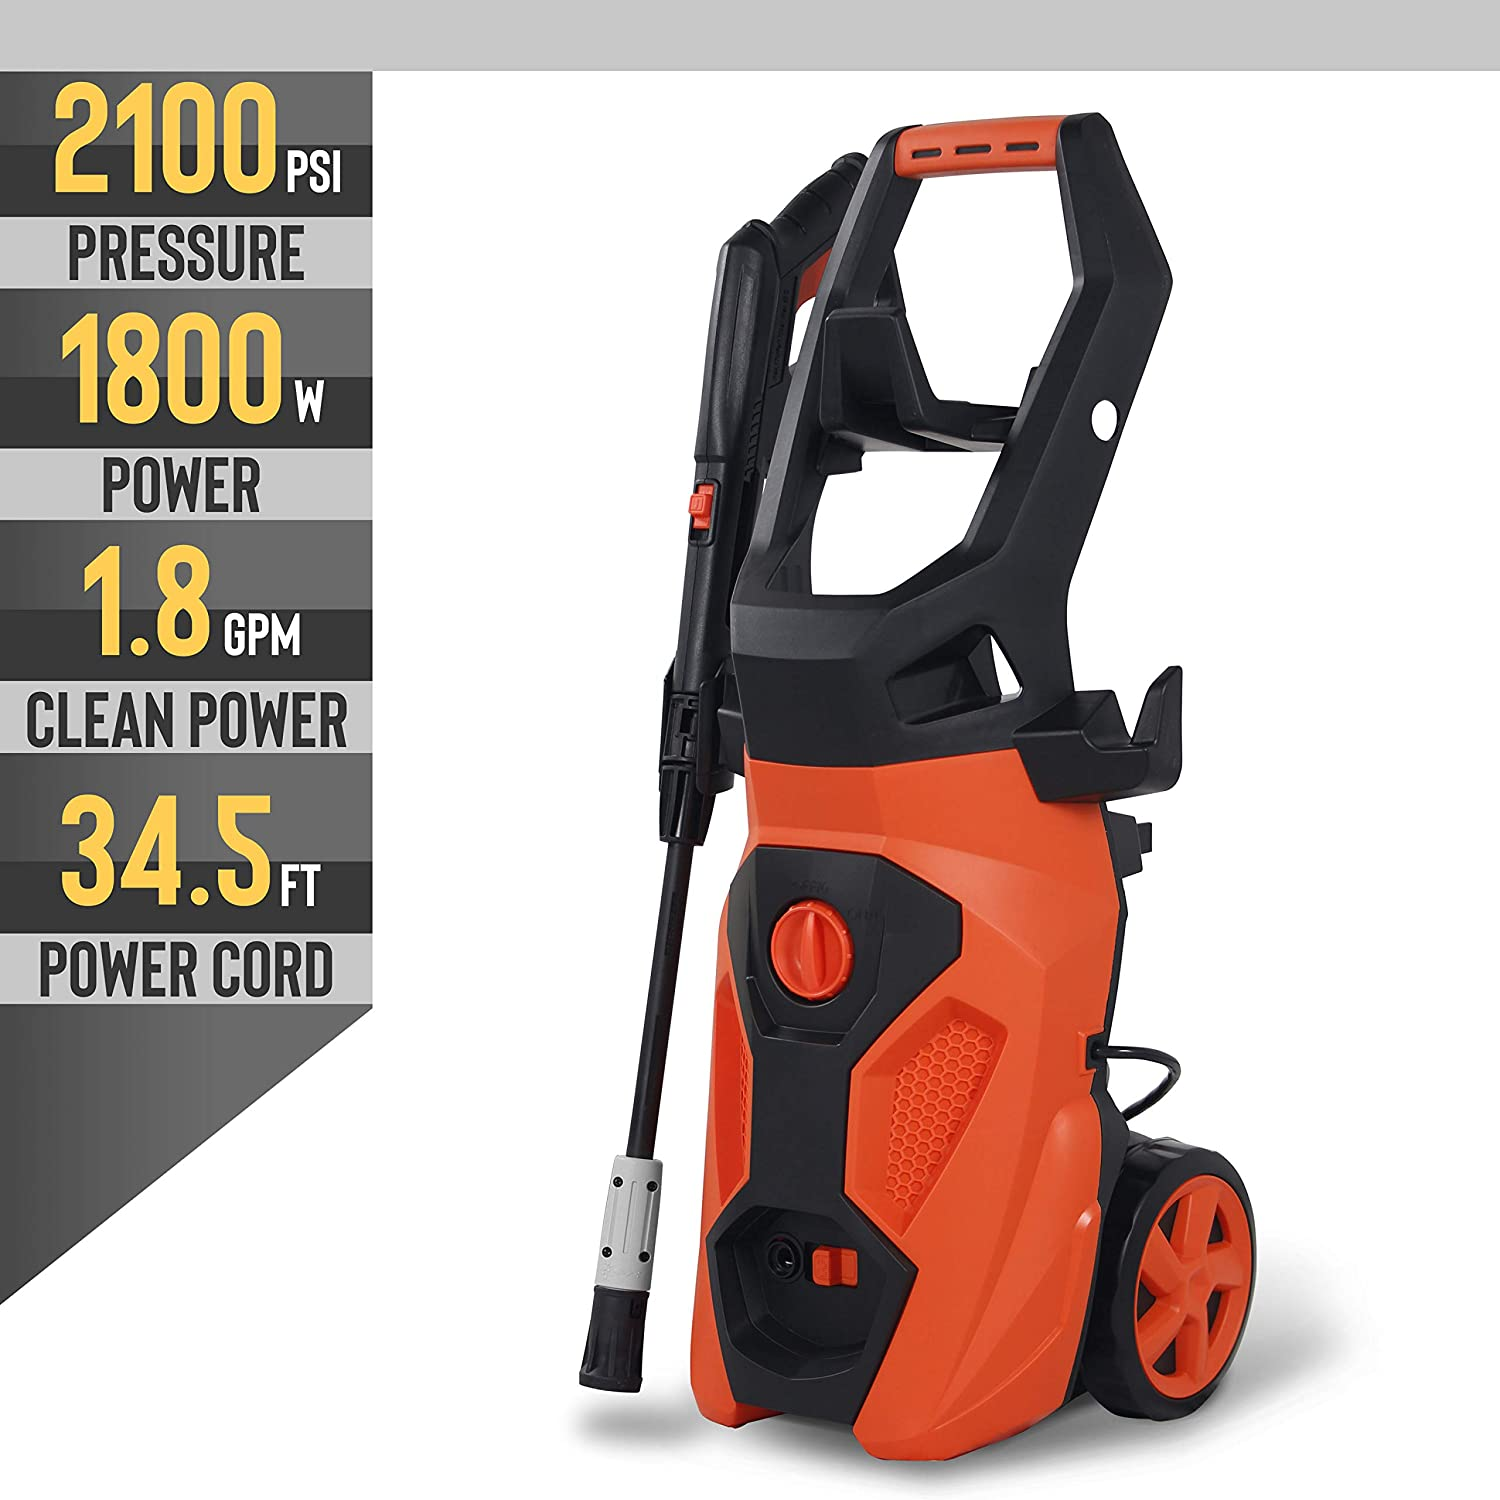 YIGOBUY Electric Pressure Washer High Power 1.8GPM Pressure Cleaner with Spray Gun, 26ft High Pressue Hose, Hose Reel